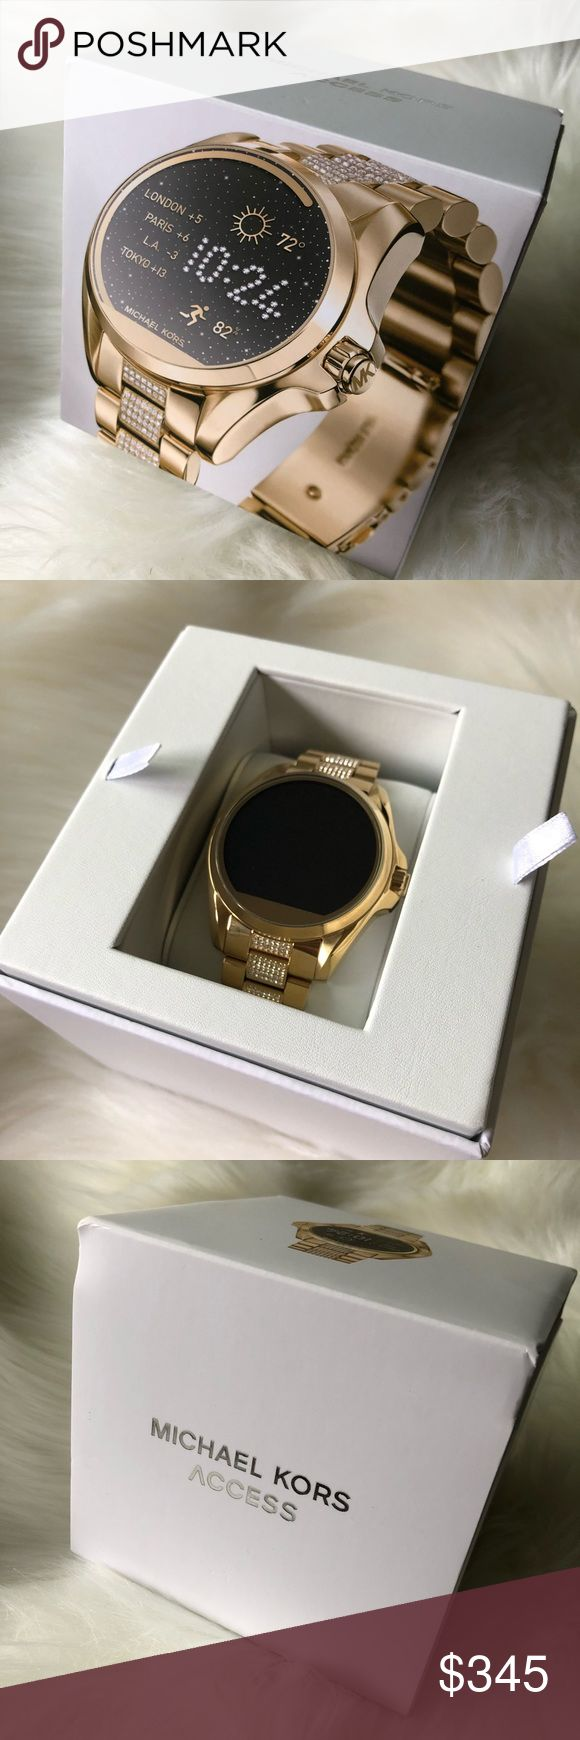 Michael Kors Access Smart Watch MK smart Watch  Brand new.Never used. Unsealed Gold-tone Activity Tracker:Yes Battery Life:Estimated all day Case Material:Stainless Steel Compatibility: Android Devices 4.3+, iOS 8+/ iPhone 5 +, iOS 7+ / iPhone 4s + Connectivity: Bluetooth® Smart Enabled / 4.1 Low Energy, Wi-Fi 802.11 b/g/n Heart Rate: No Sleep Monitor: No Interchangeable: Yes Notifications: Yes Strap Material: Stainless Steel Touchscreen: Yes In the Box: Charger Puck with USB Cord, Loose…